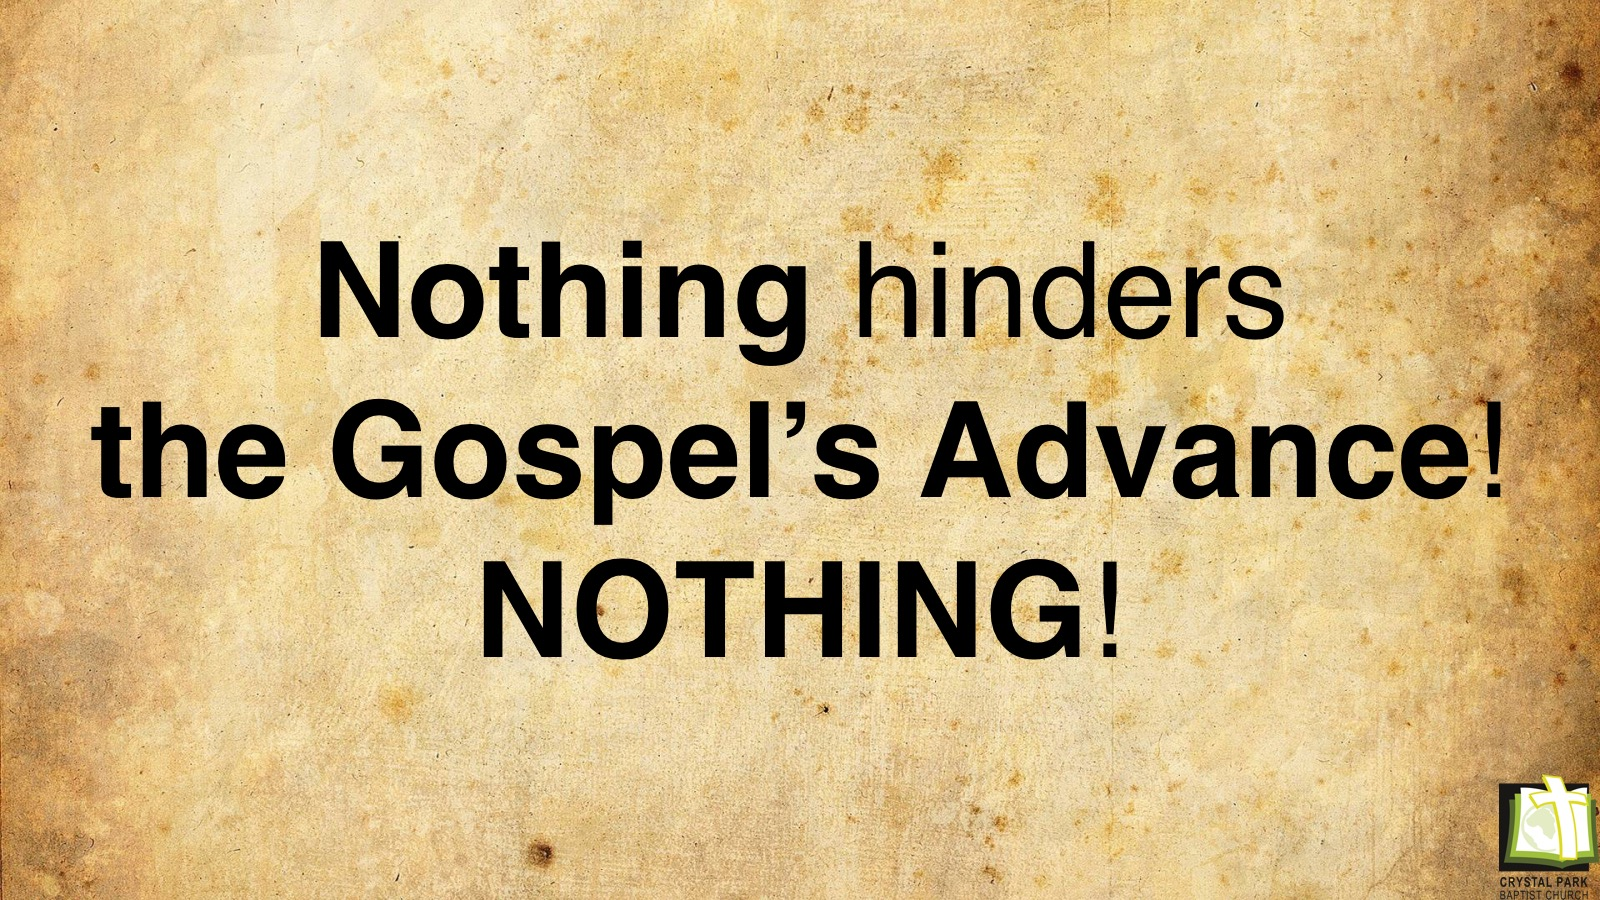 Nothing hinders the Gospel's Advance! NOTHING!